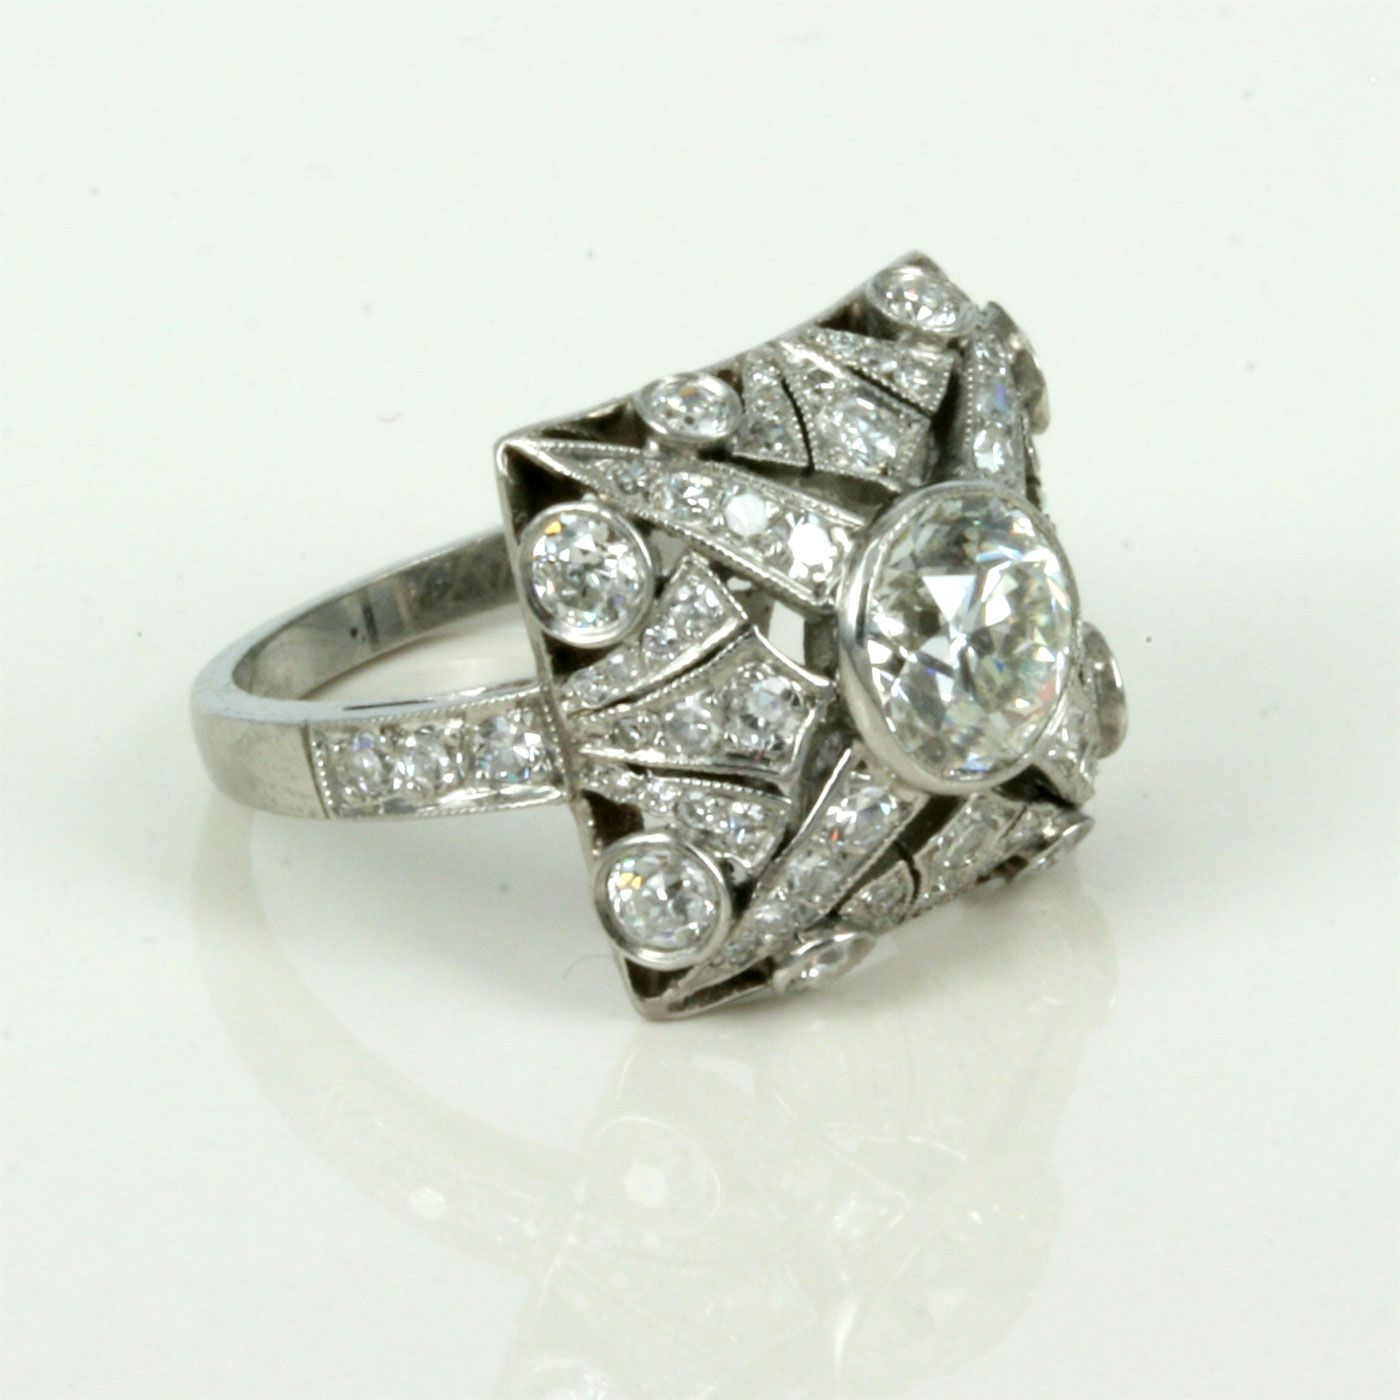 cluster sheldon image precious platinum diamond deco amp jewellery art sapphire bands style bloomfield flower ring rings